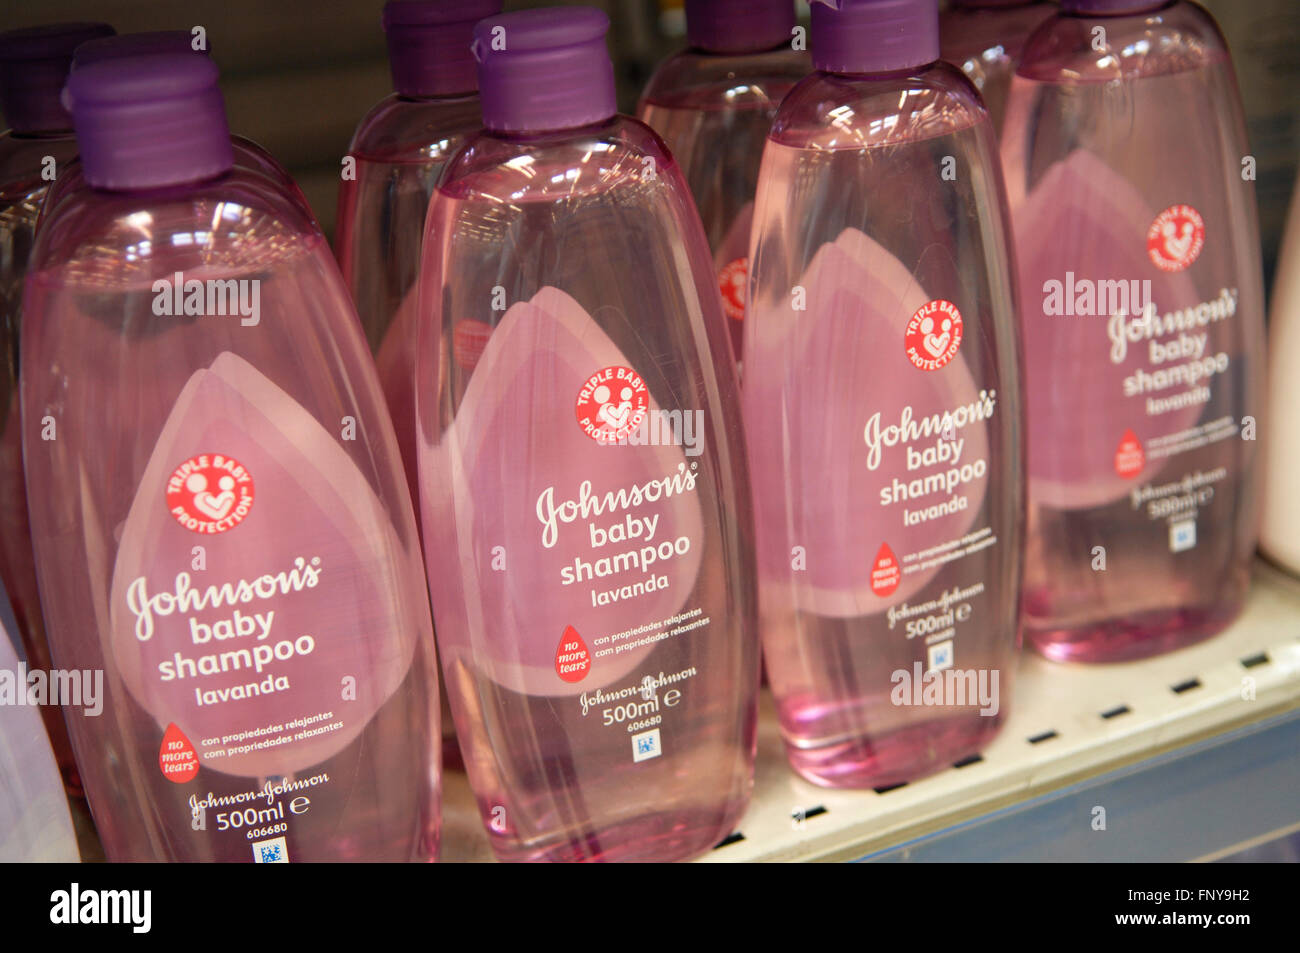 Johnson's Baby Shampoo displayed in a Carrefour Supermarket in Malaga Spain. - Stock Image